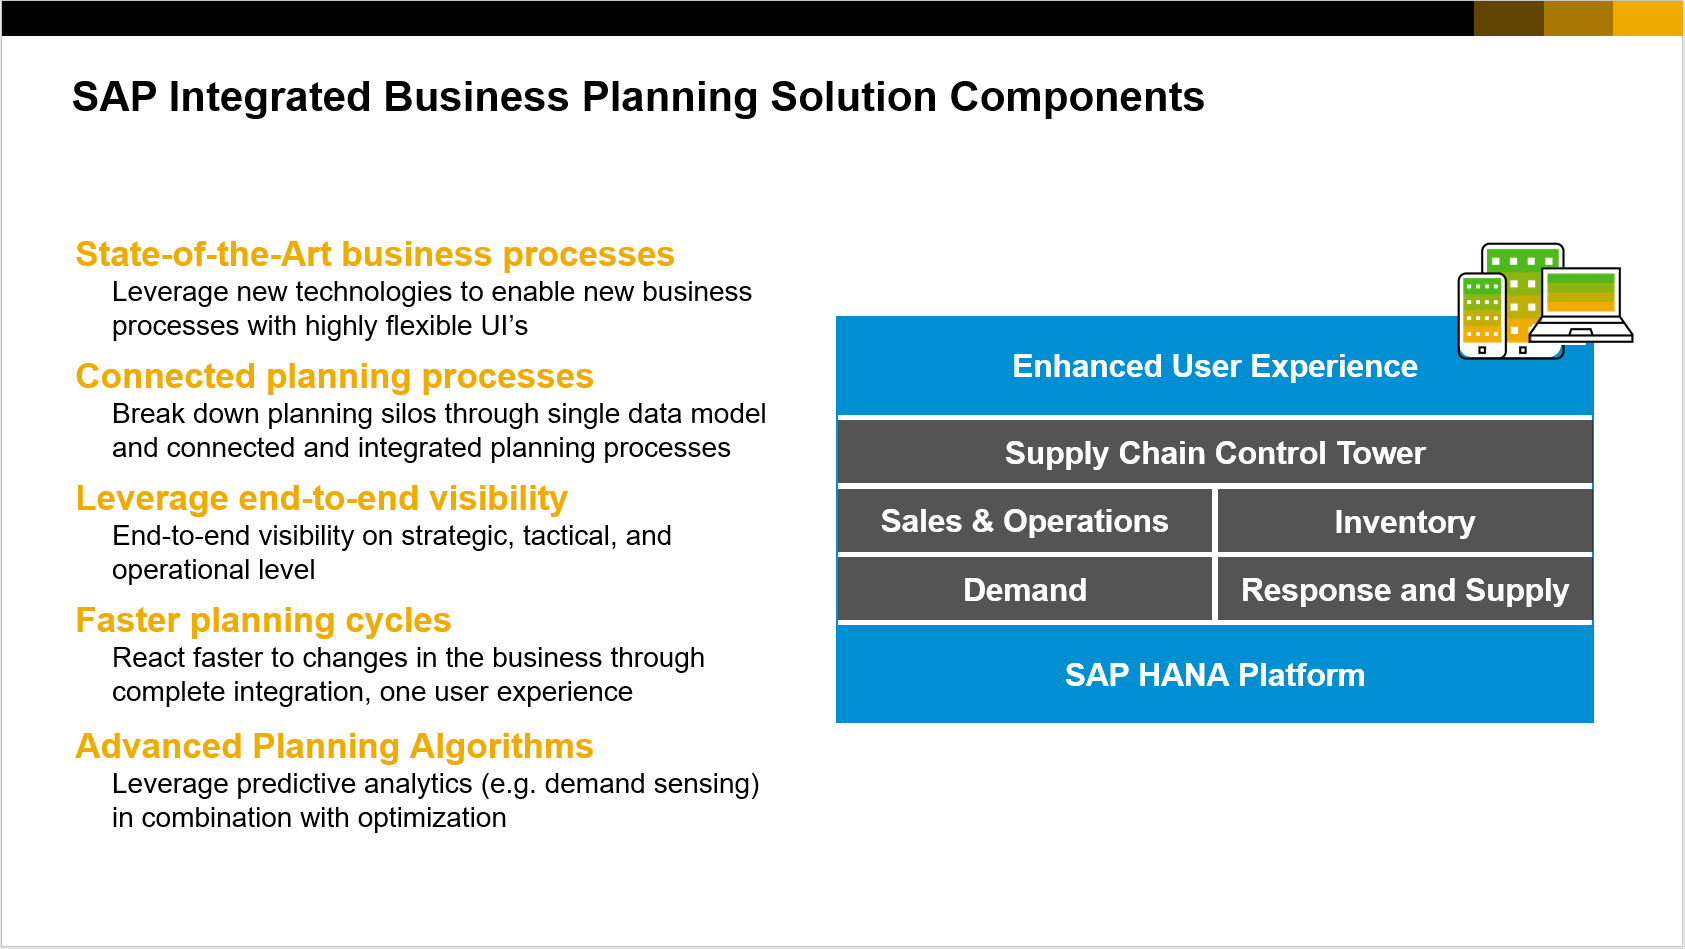 Getting started: SAP Integrated Business Planning - Supply Chain